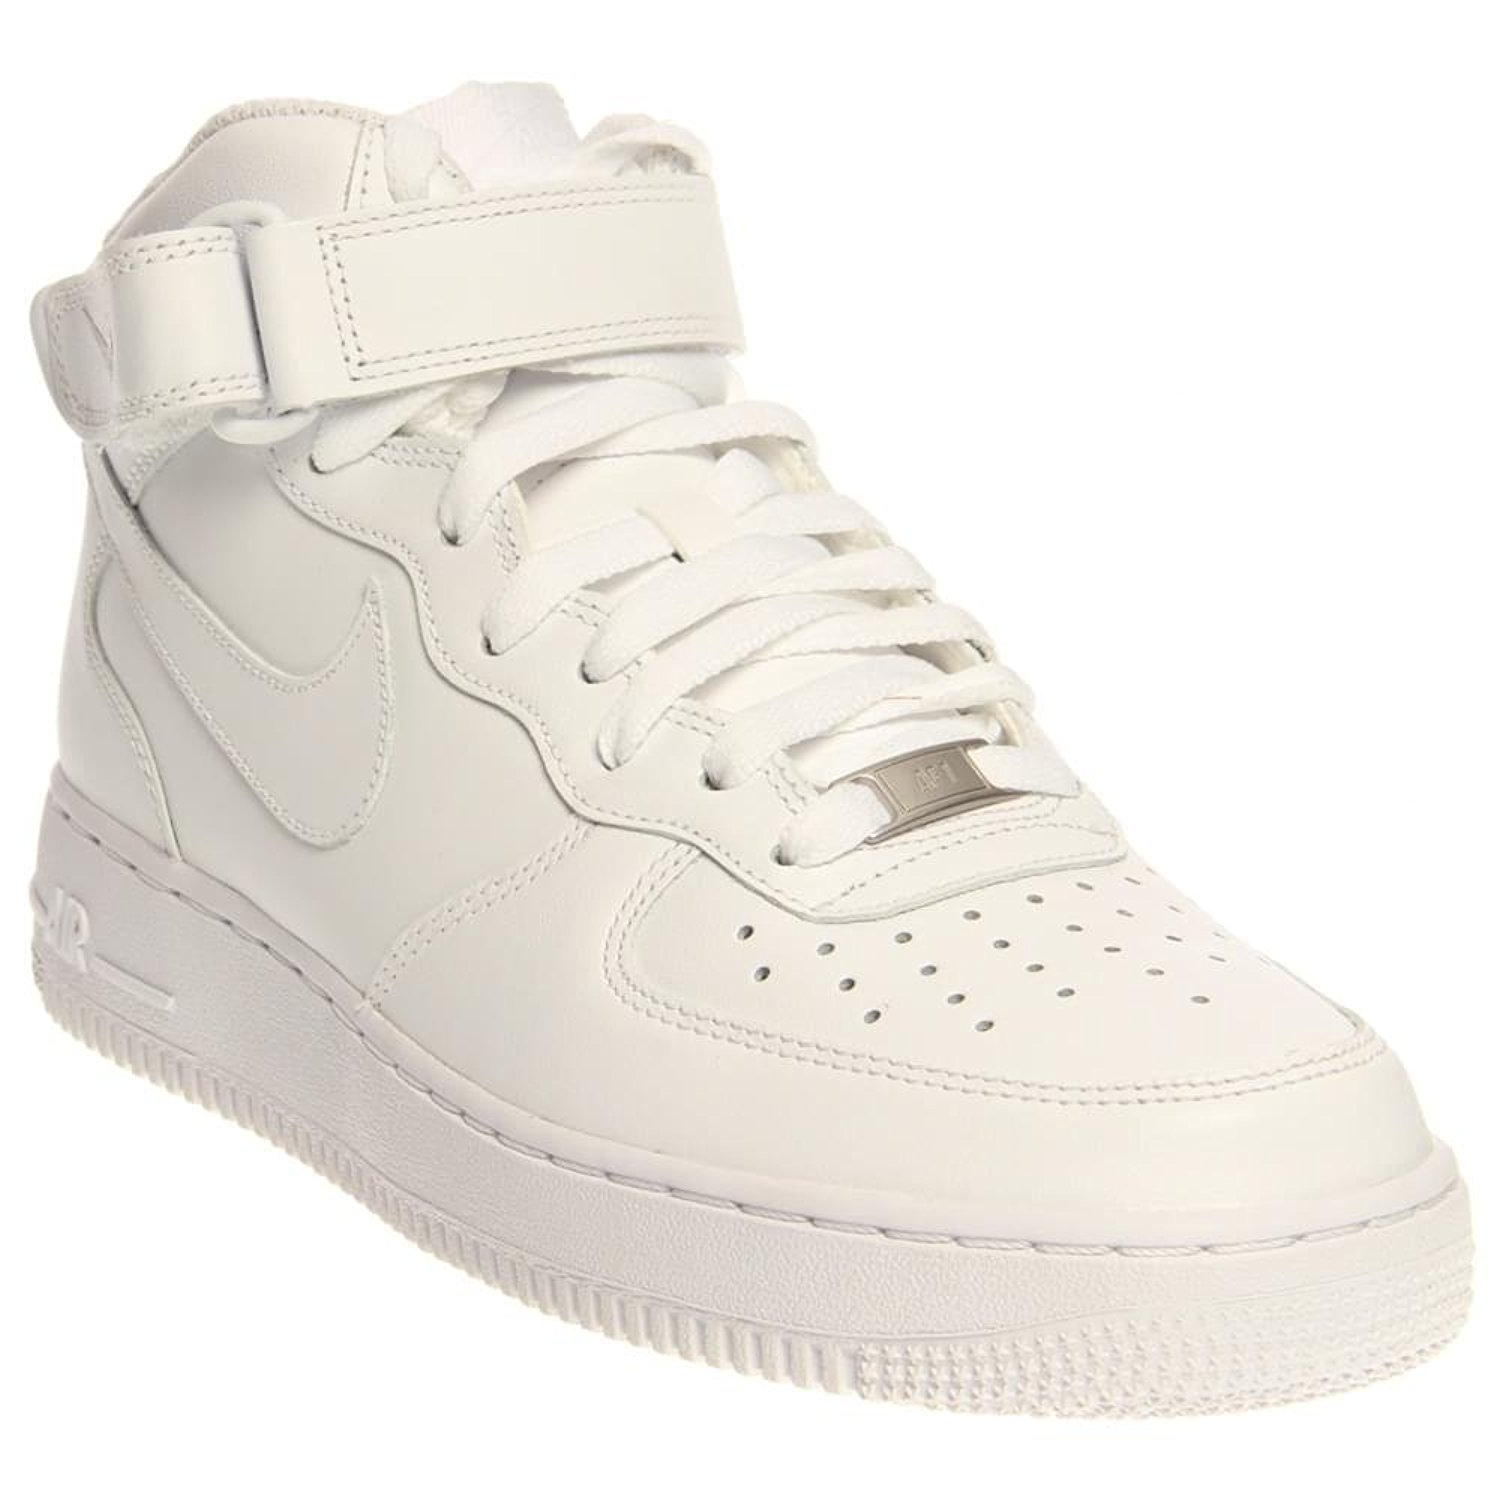 uk availability 39a5e 92b89 Get Quotations · Nike Mens Air Force 1 Mid 07 Basketball Shoes White White  315123-111 Size